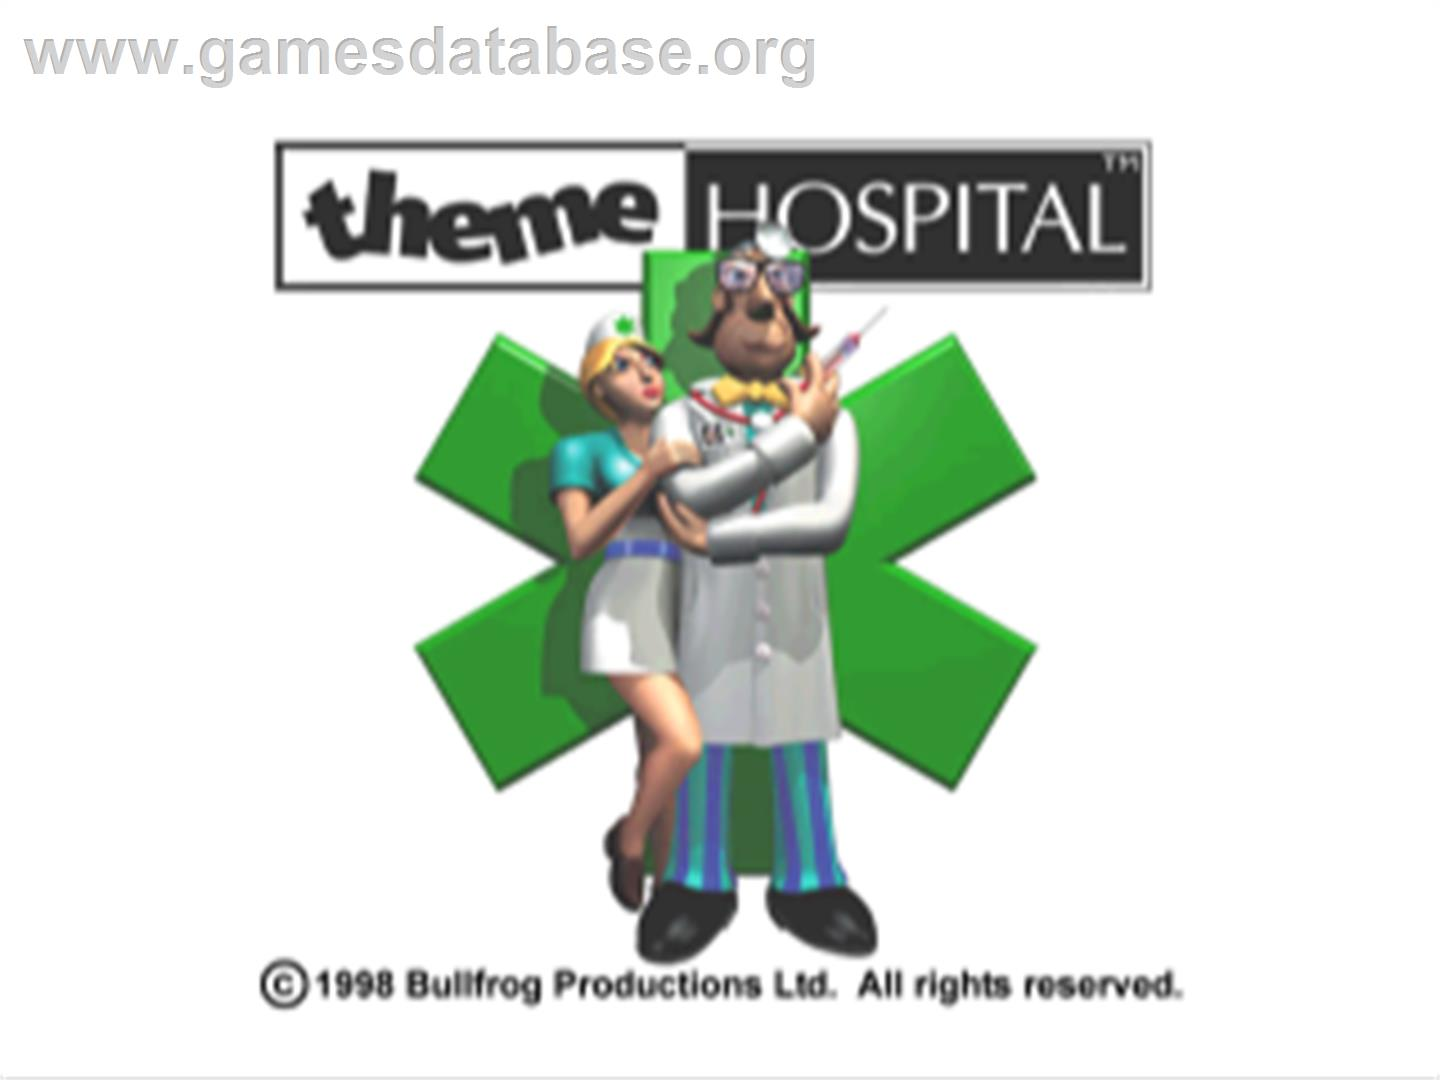 Theme Hospital - Sony Playstation - Artwork - Title Screen